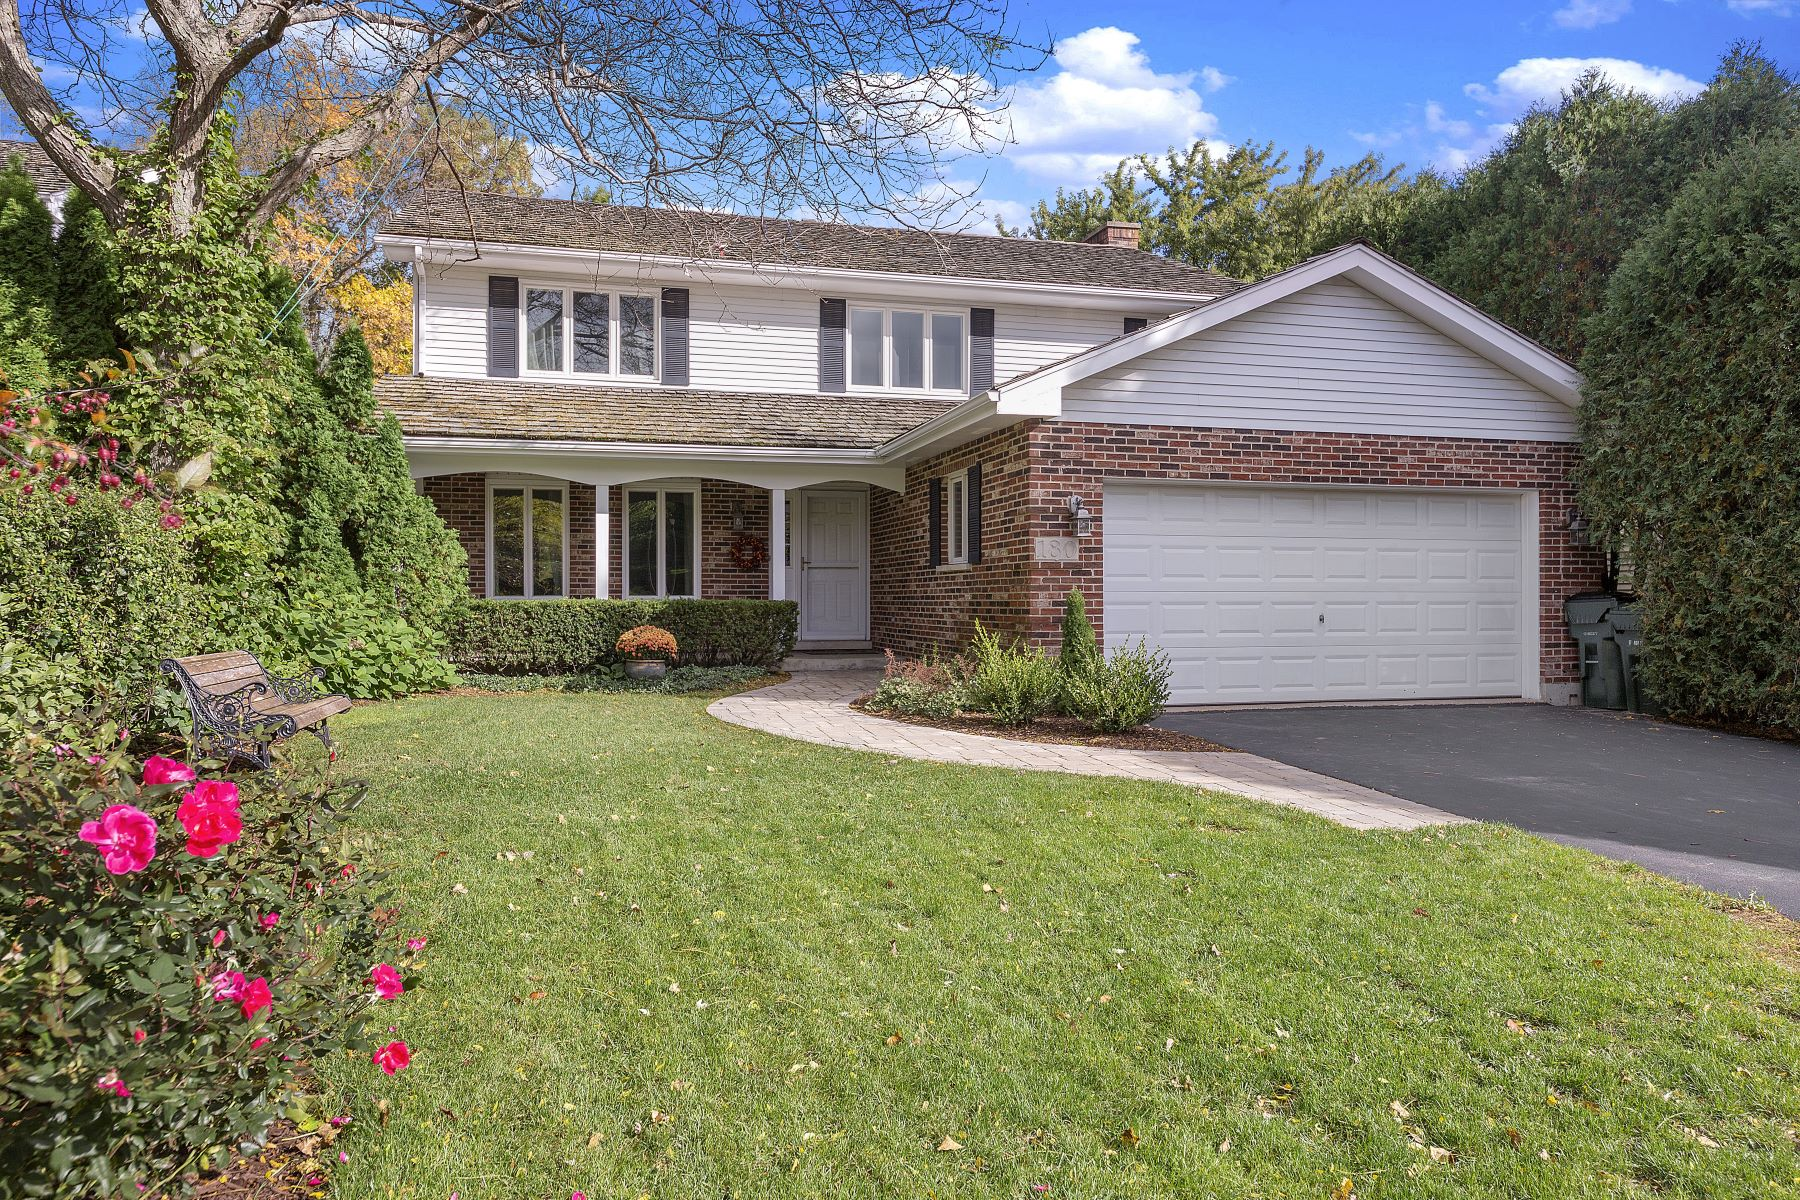 Single Family Home for Sale at Beautiful Two Story Home 180 Wimbledon Court Lake Bluff, Illinois 60044 United States